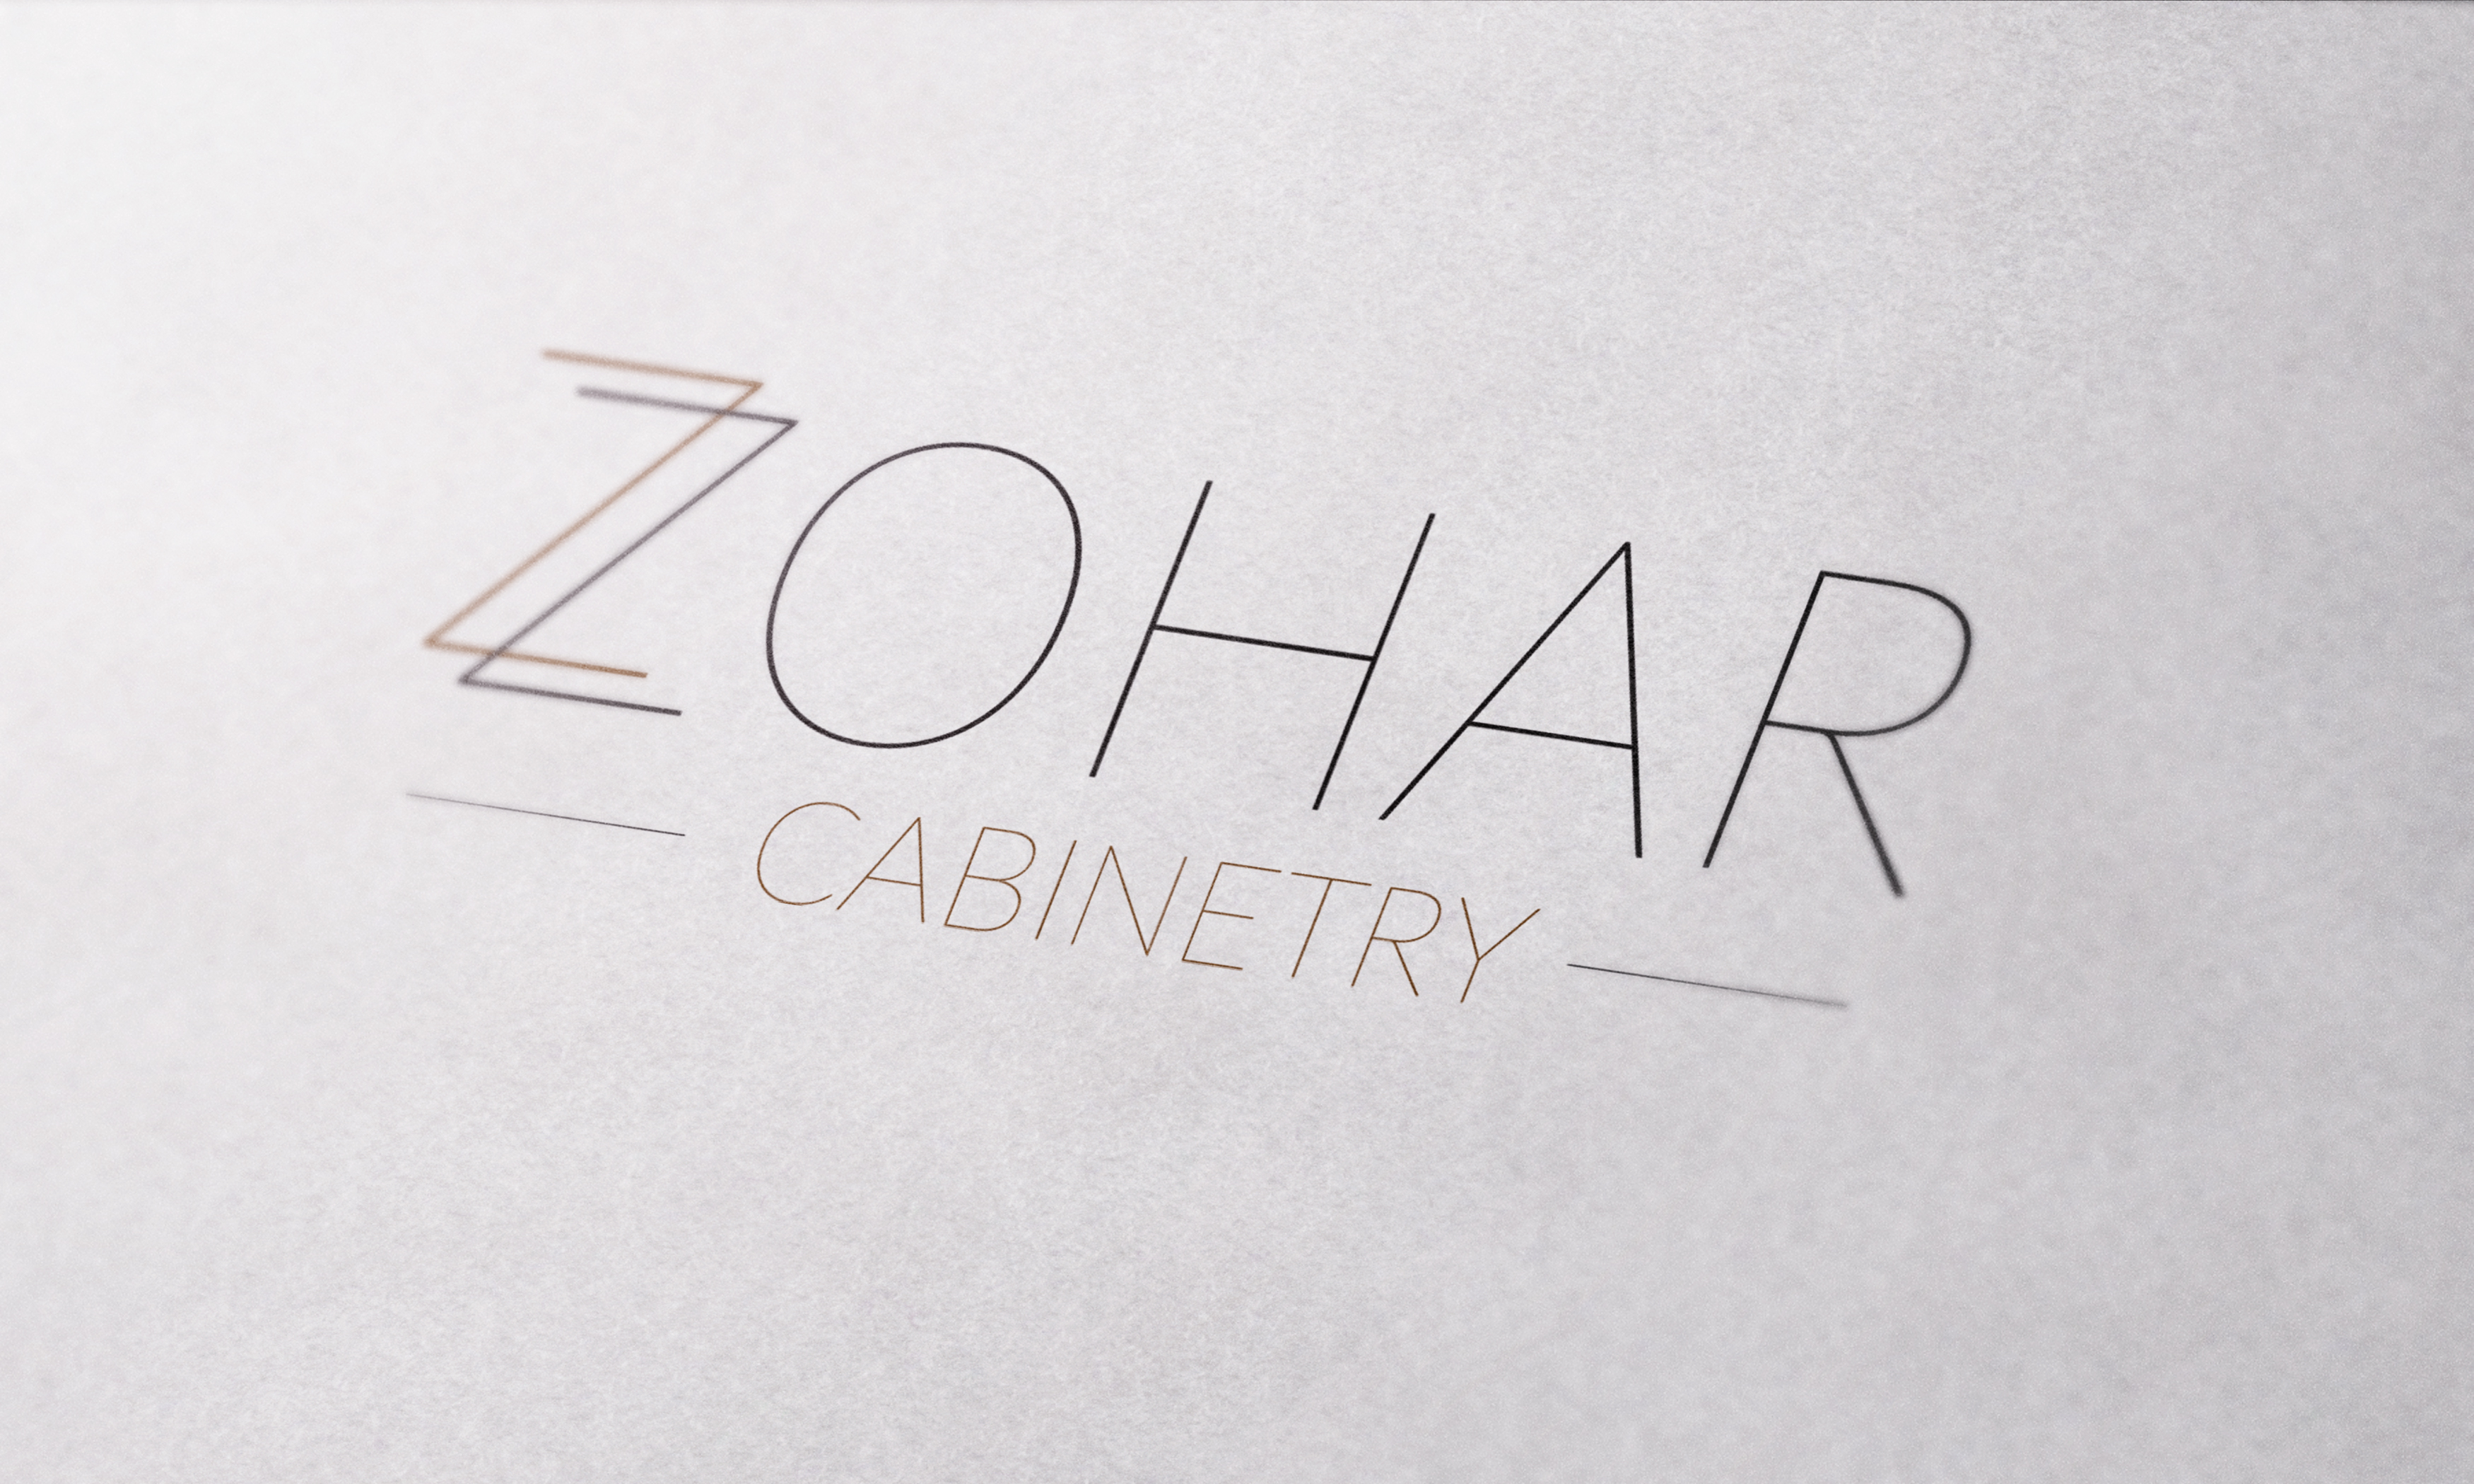 Zohar Cabinetry